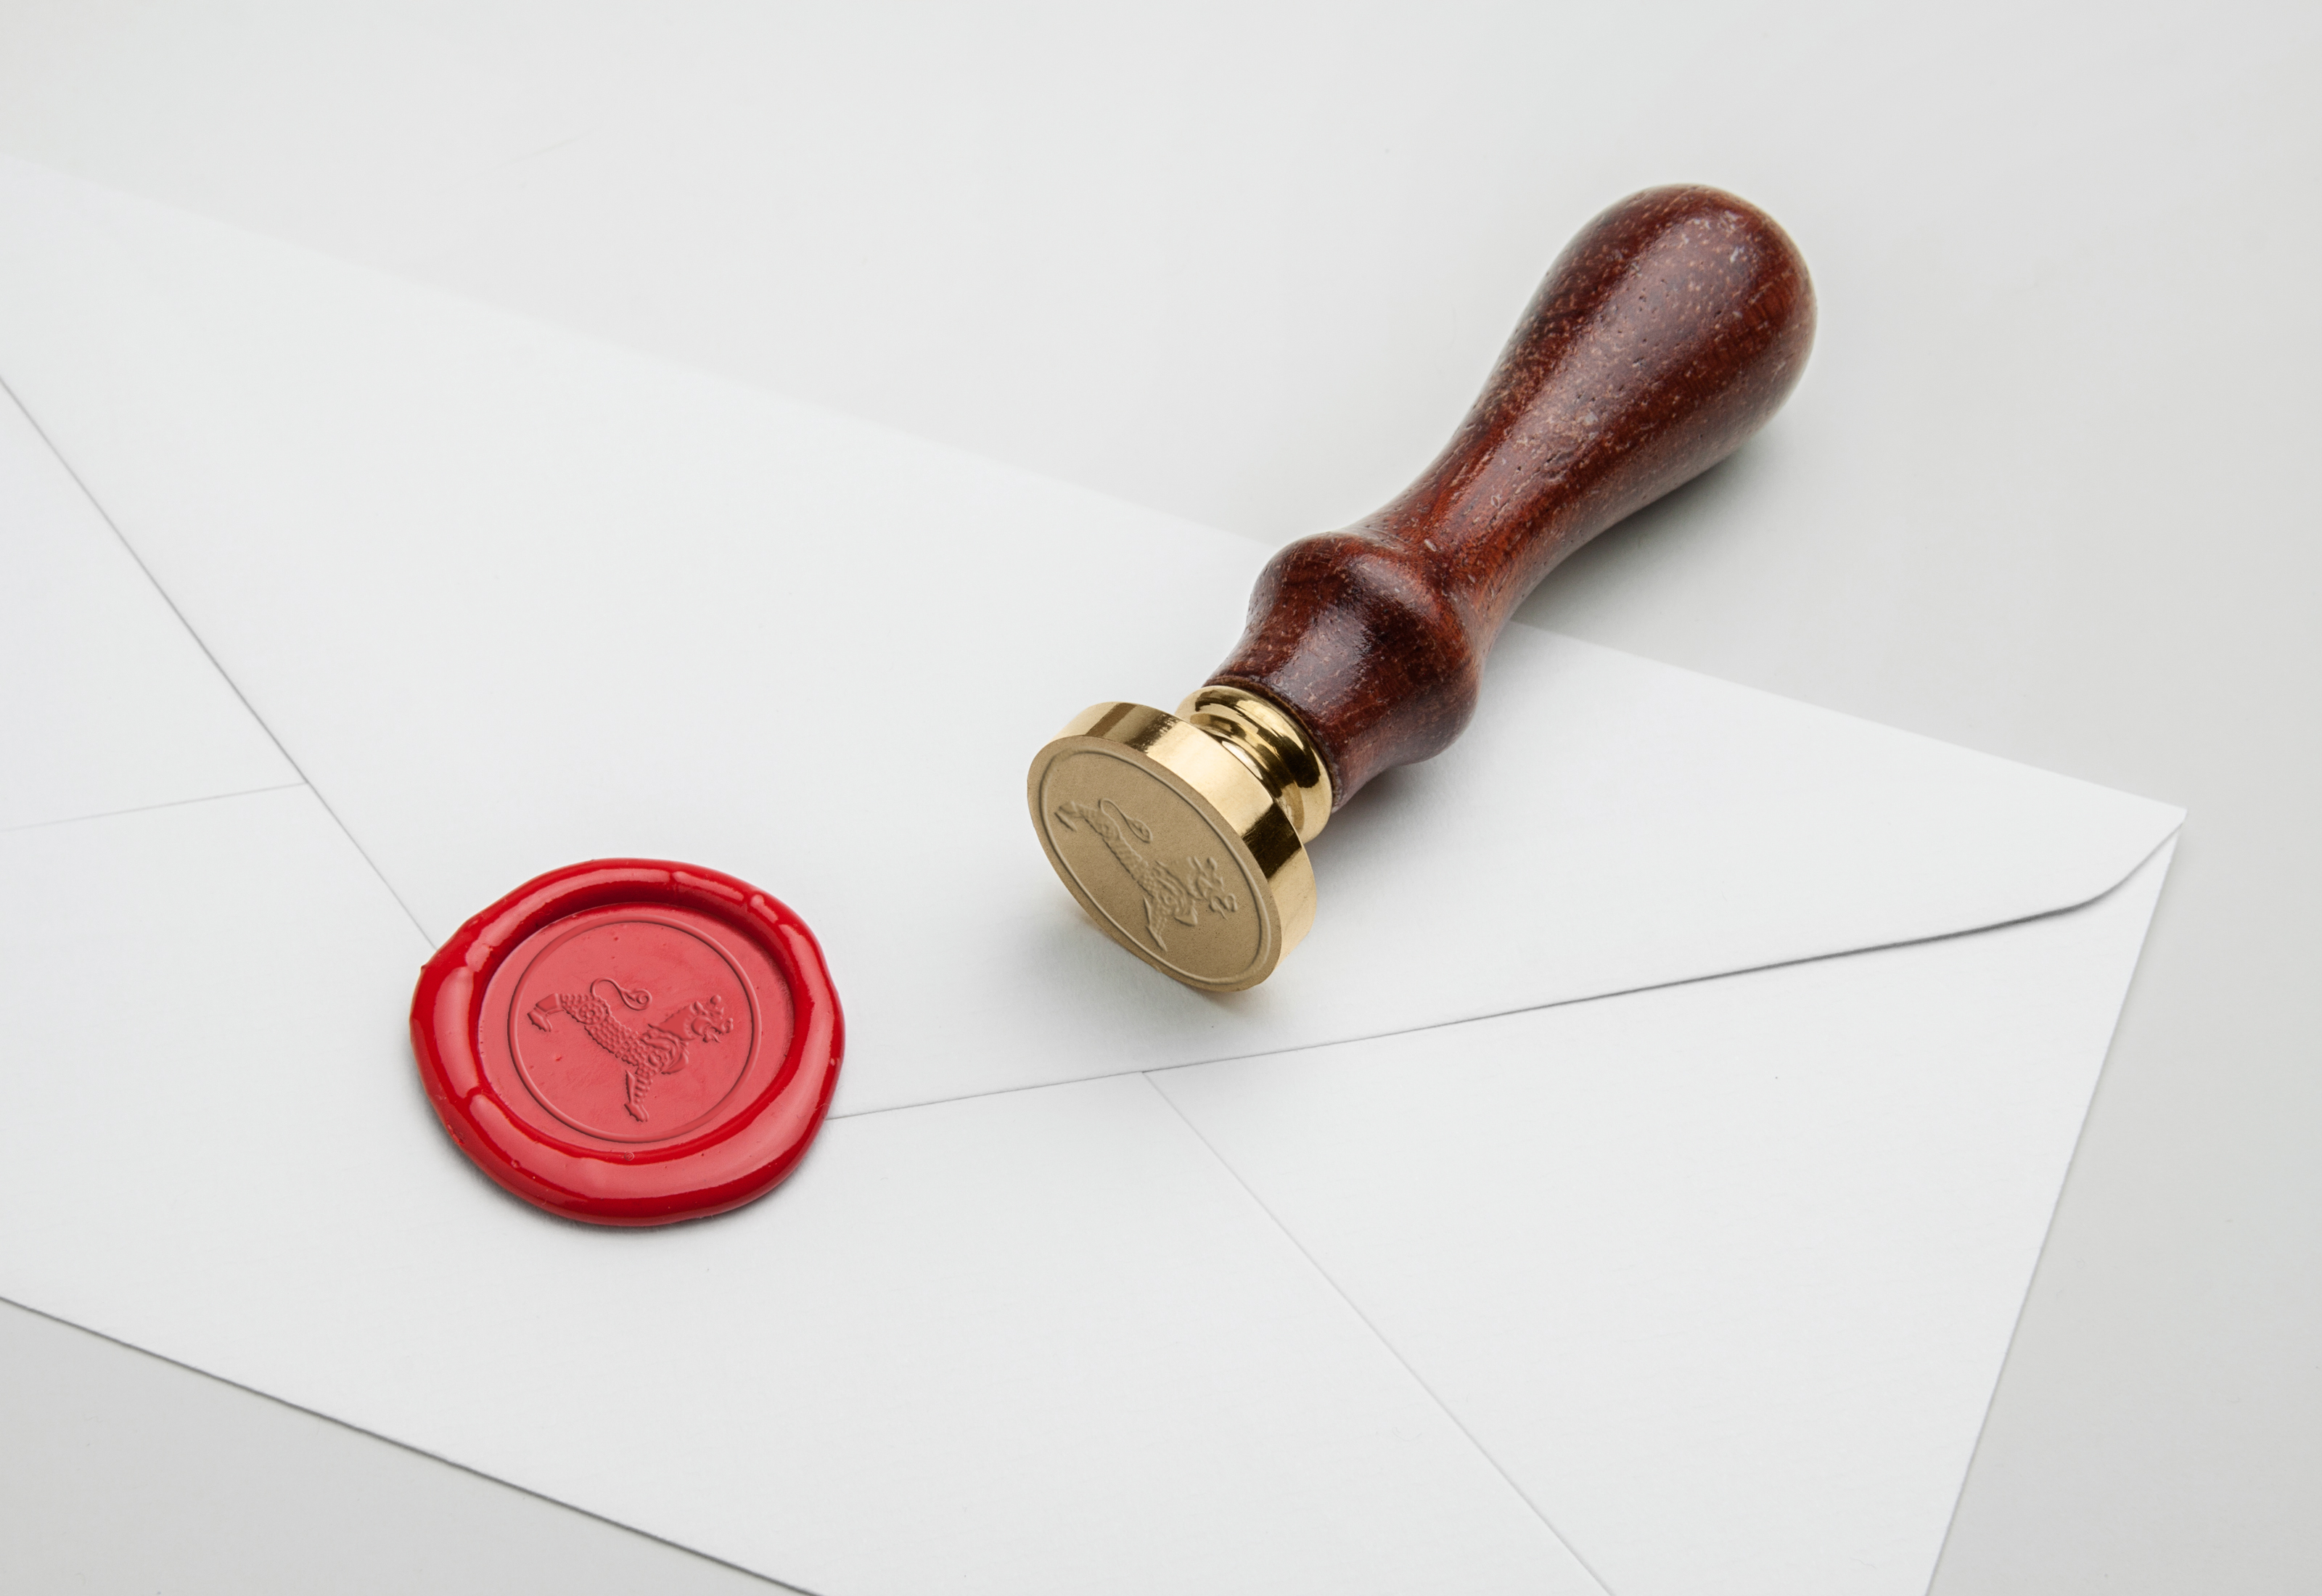 ASTC Wax Seal Stamp